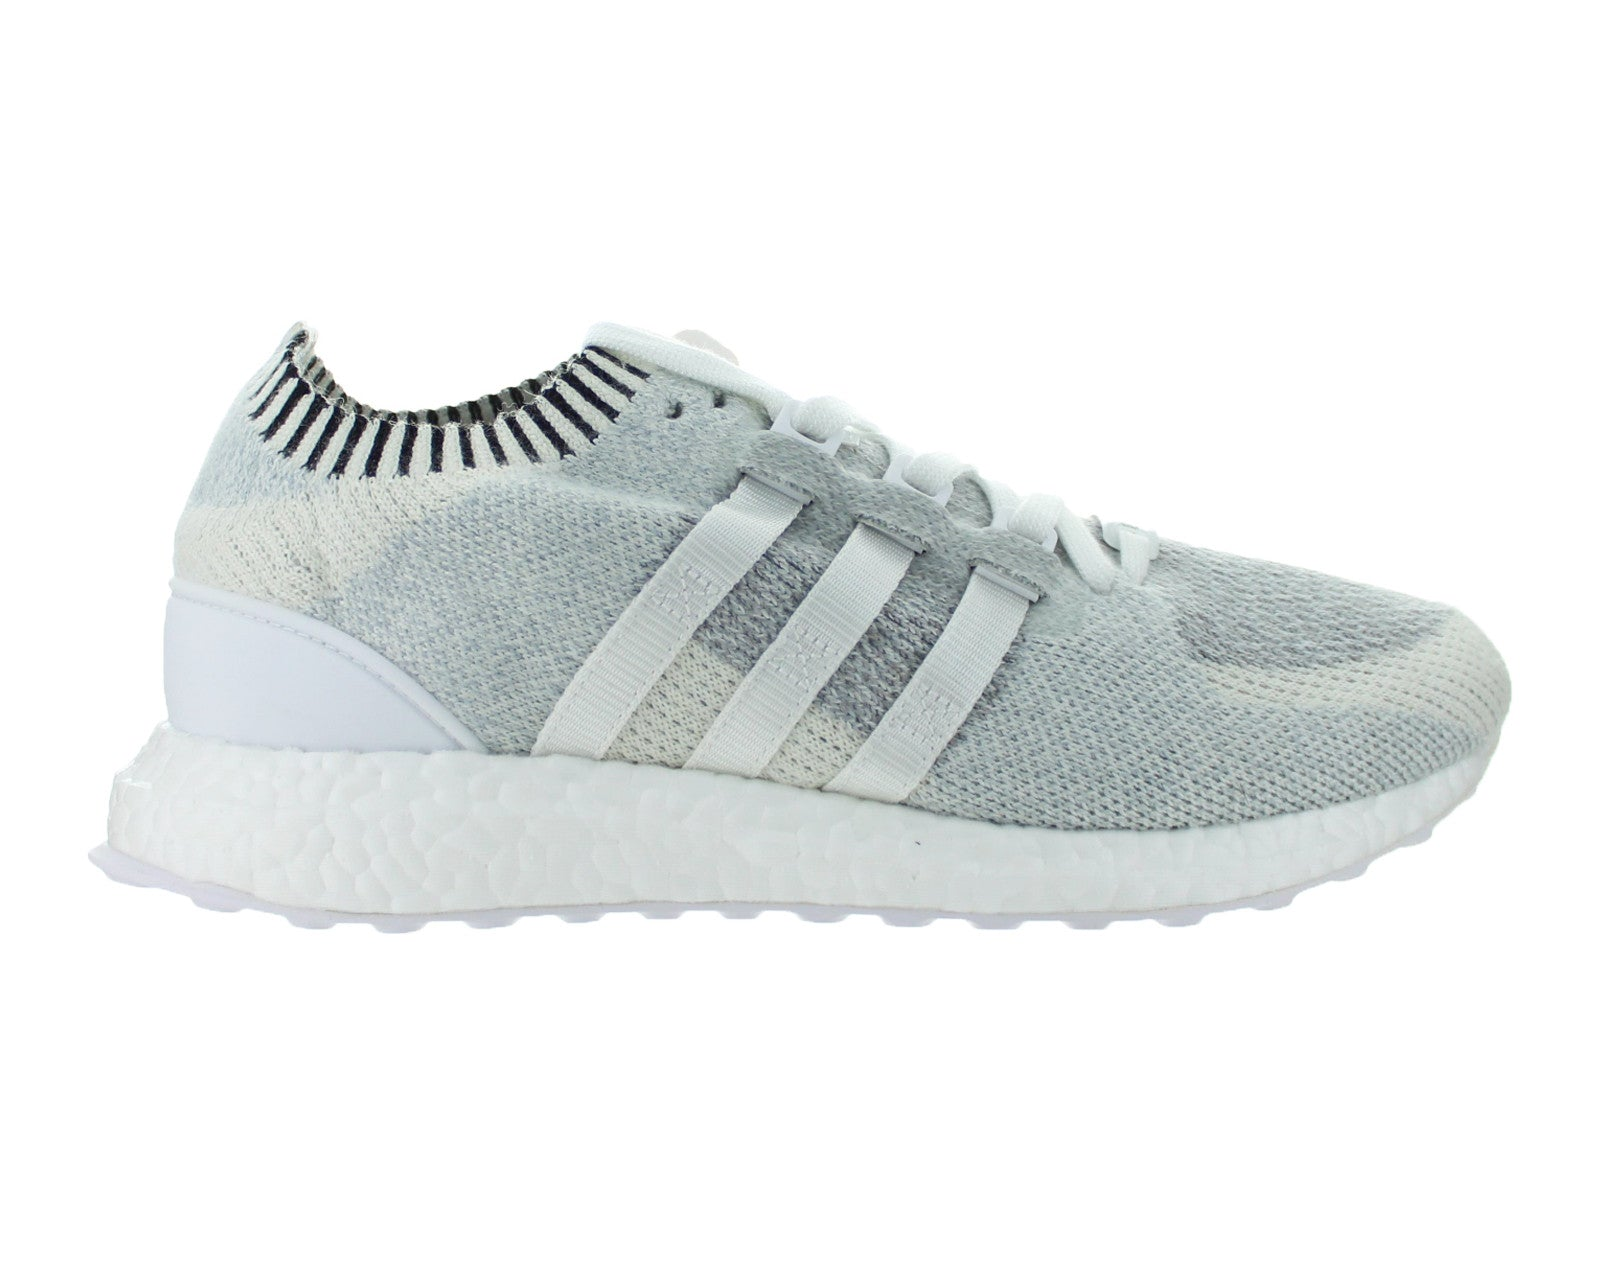 info for 9e7da fd599 Mens Adidas Equipment Support Ultra Primeknit EQT Vintage White Black BB1242